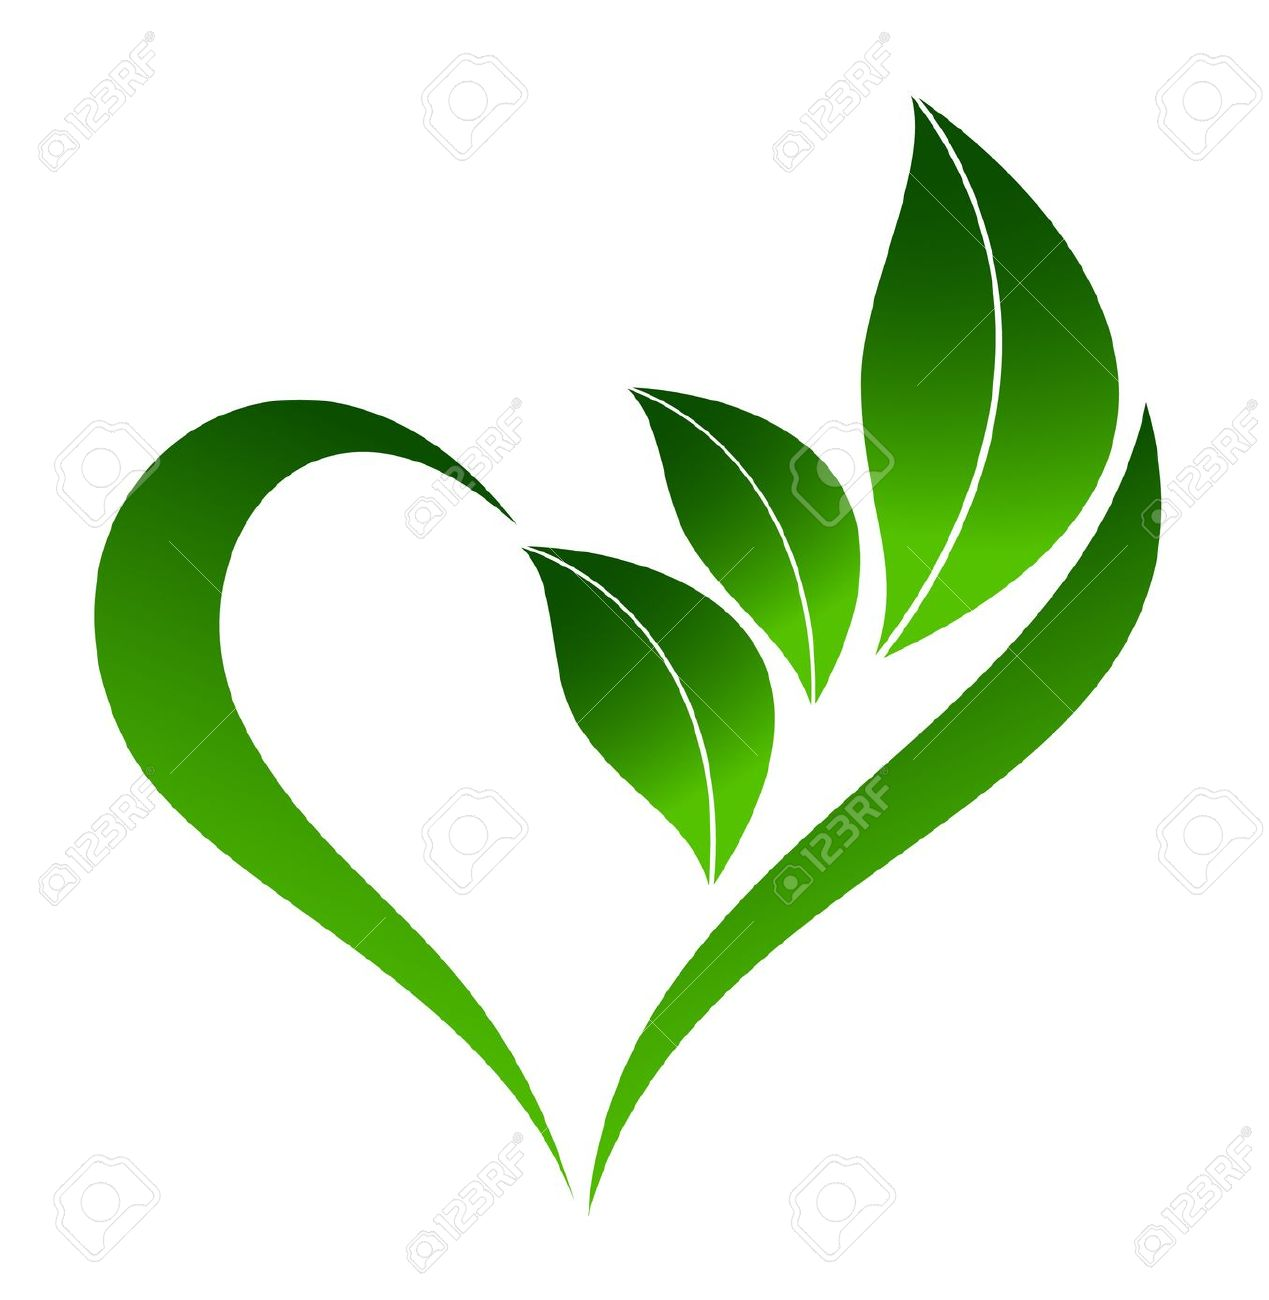 Heart leaf clipart.